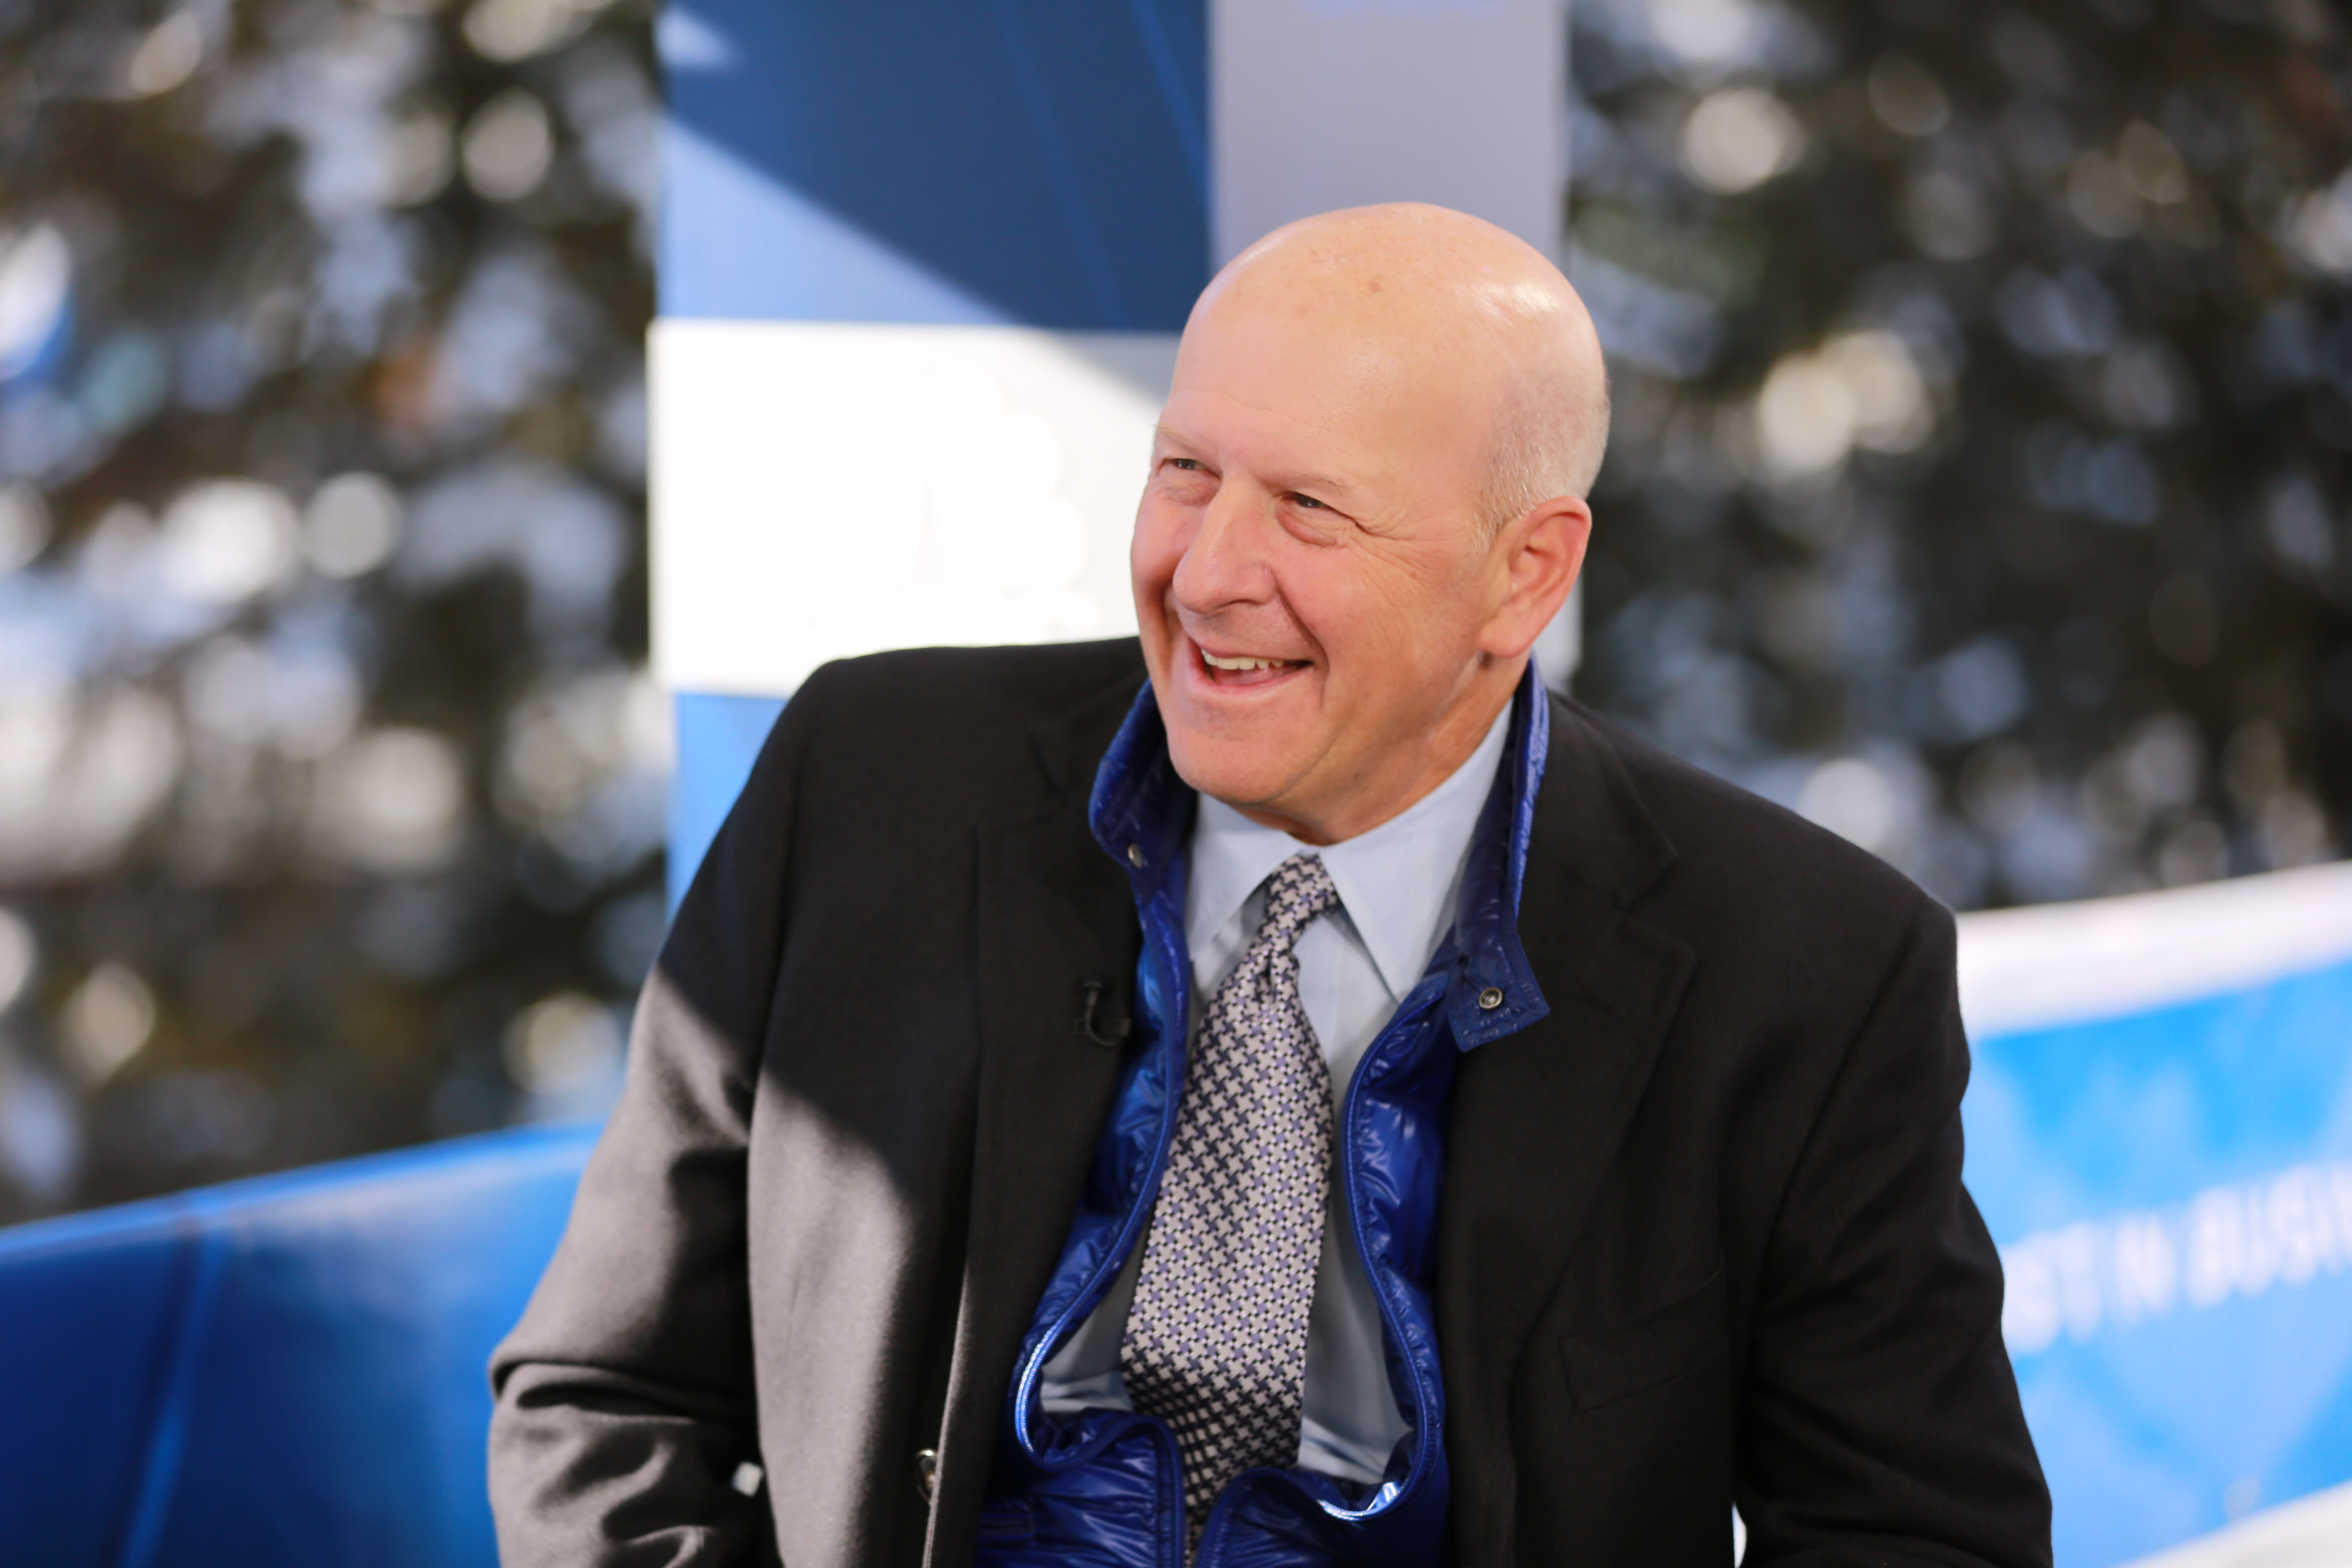 Goldman won't take companies public without at least one diverse board candidate, CEO says